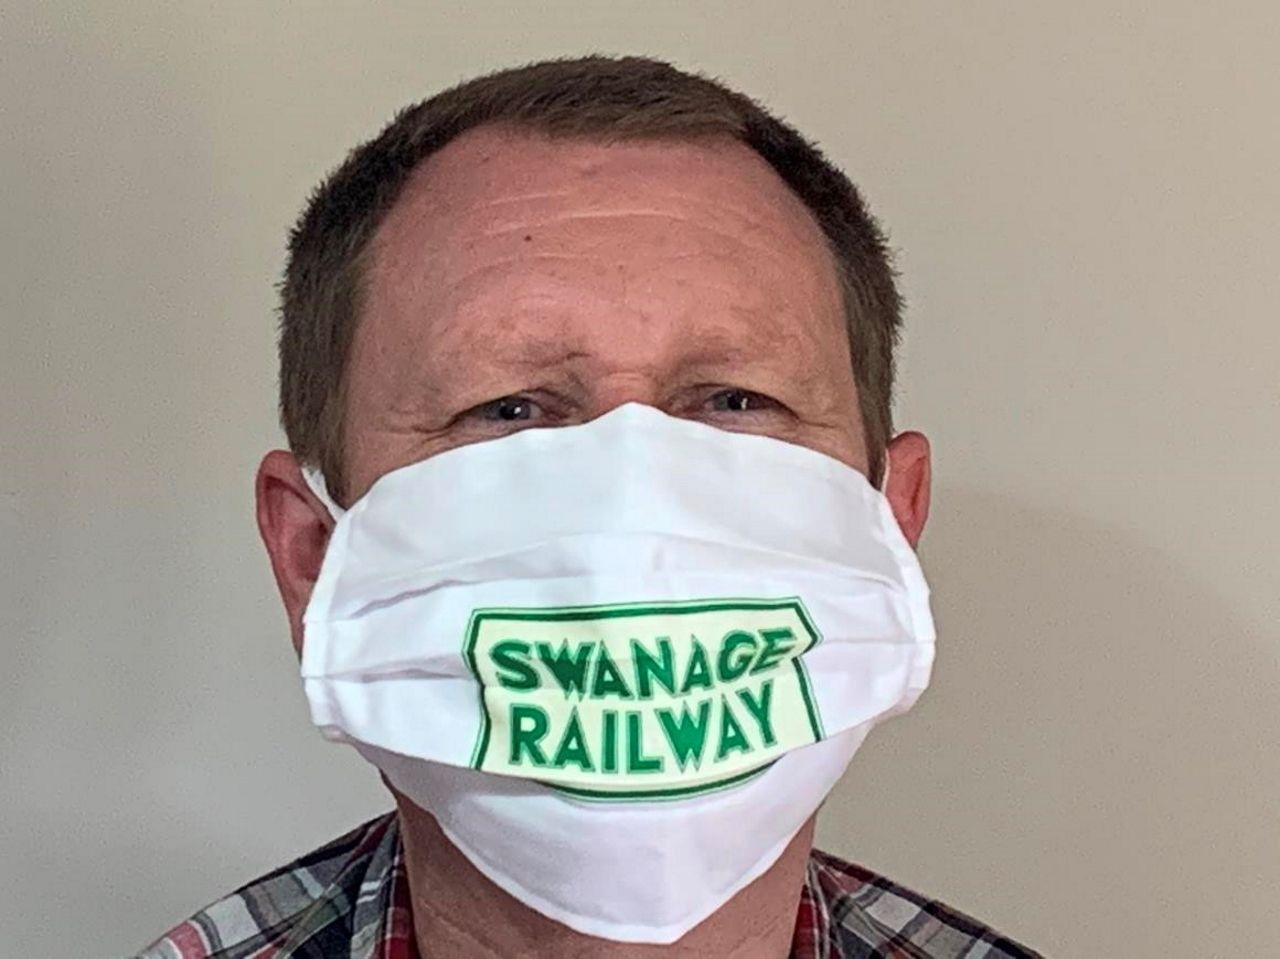 Swanage Railway offers face masks for sale as steam